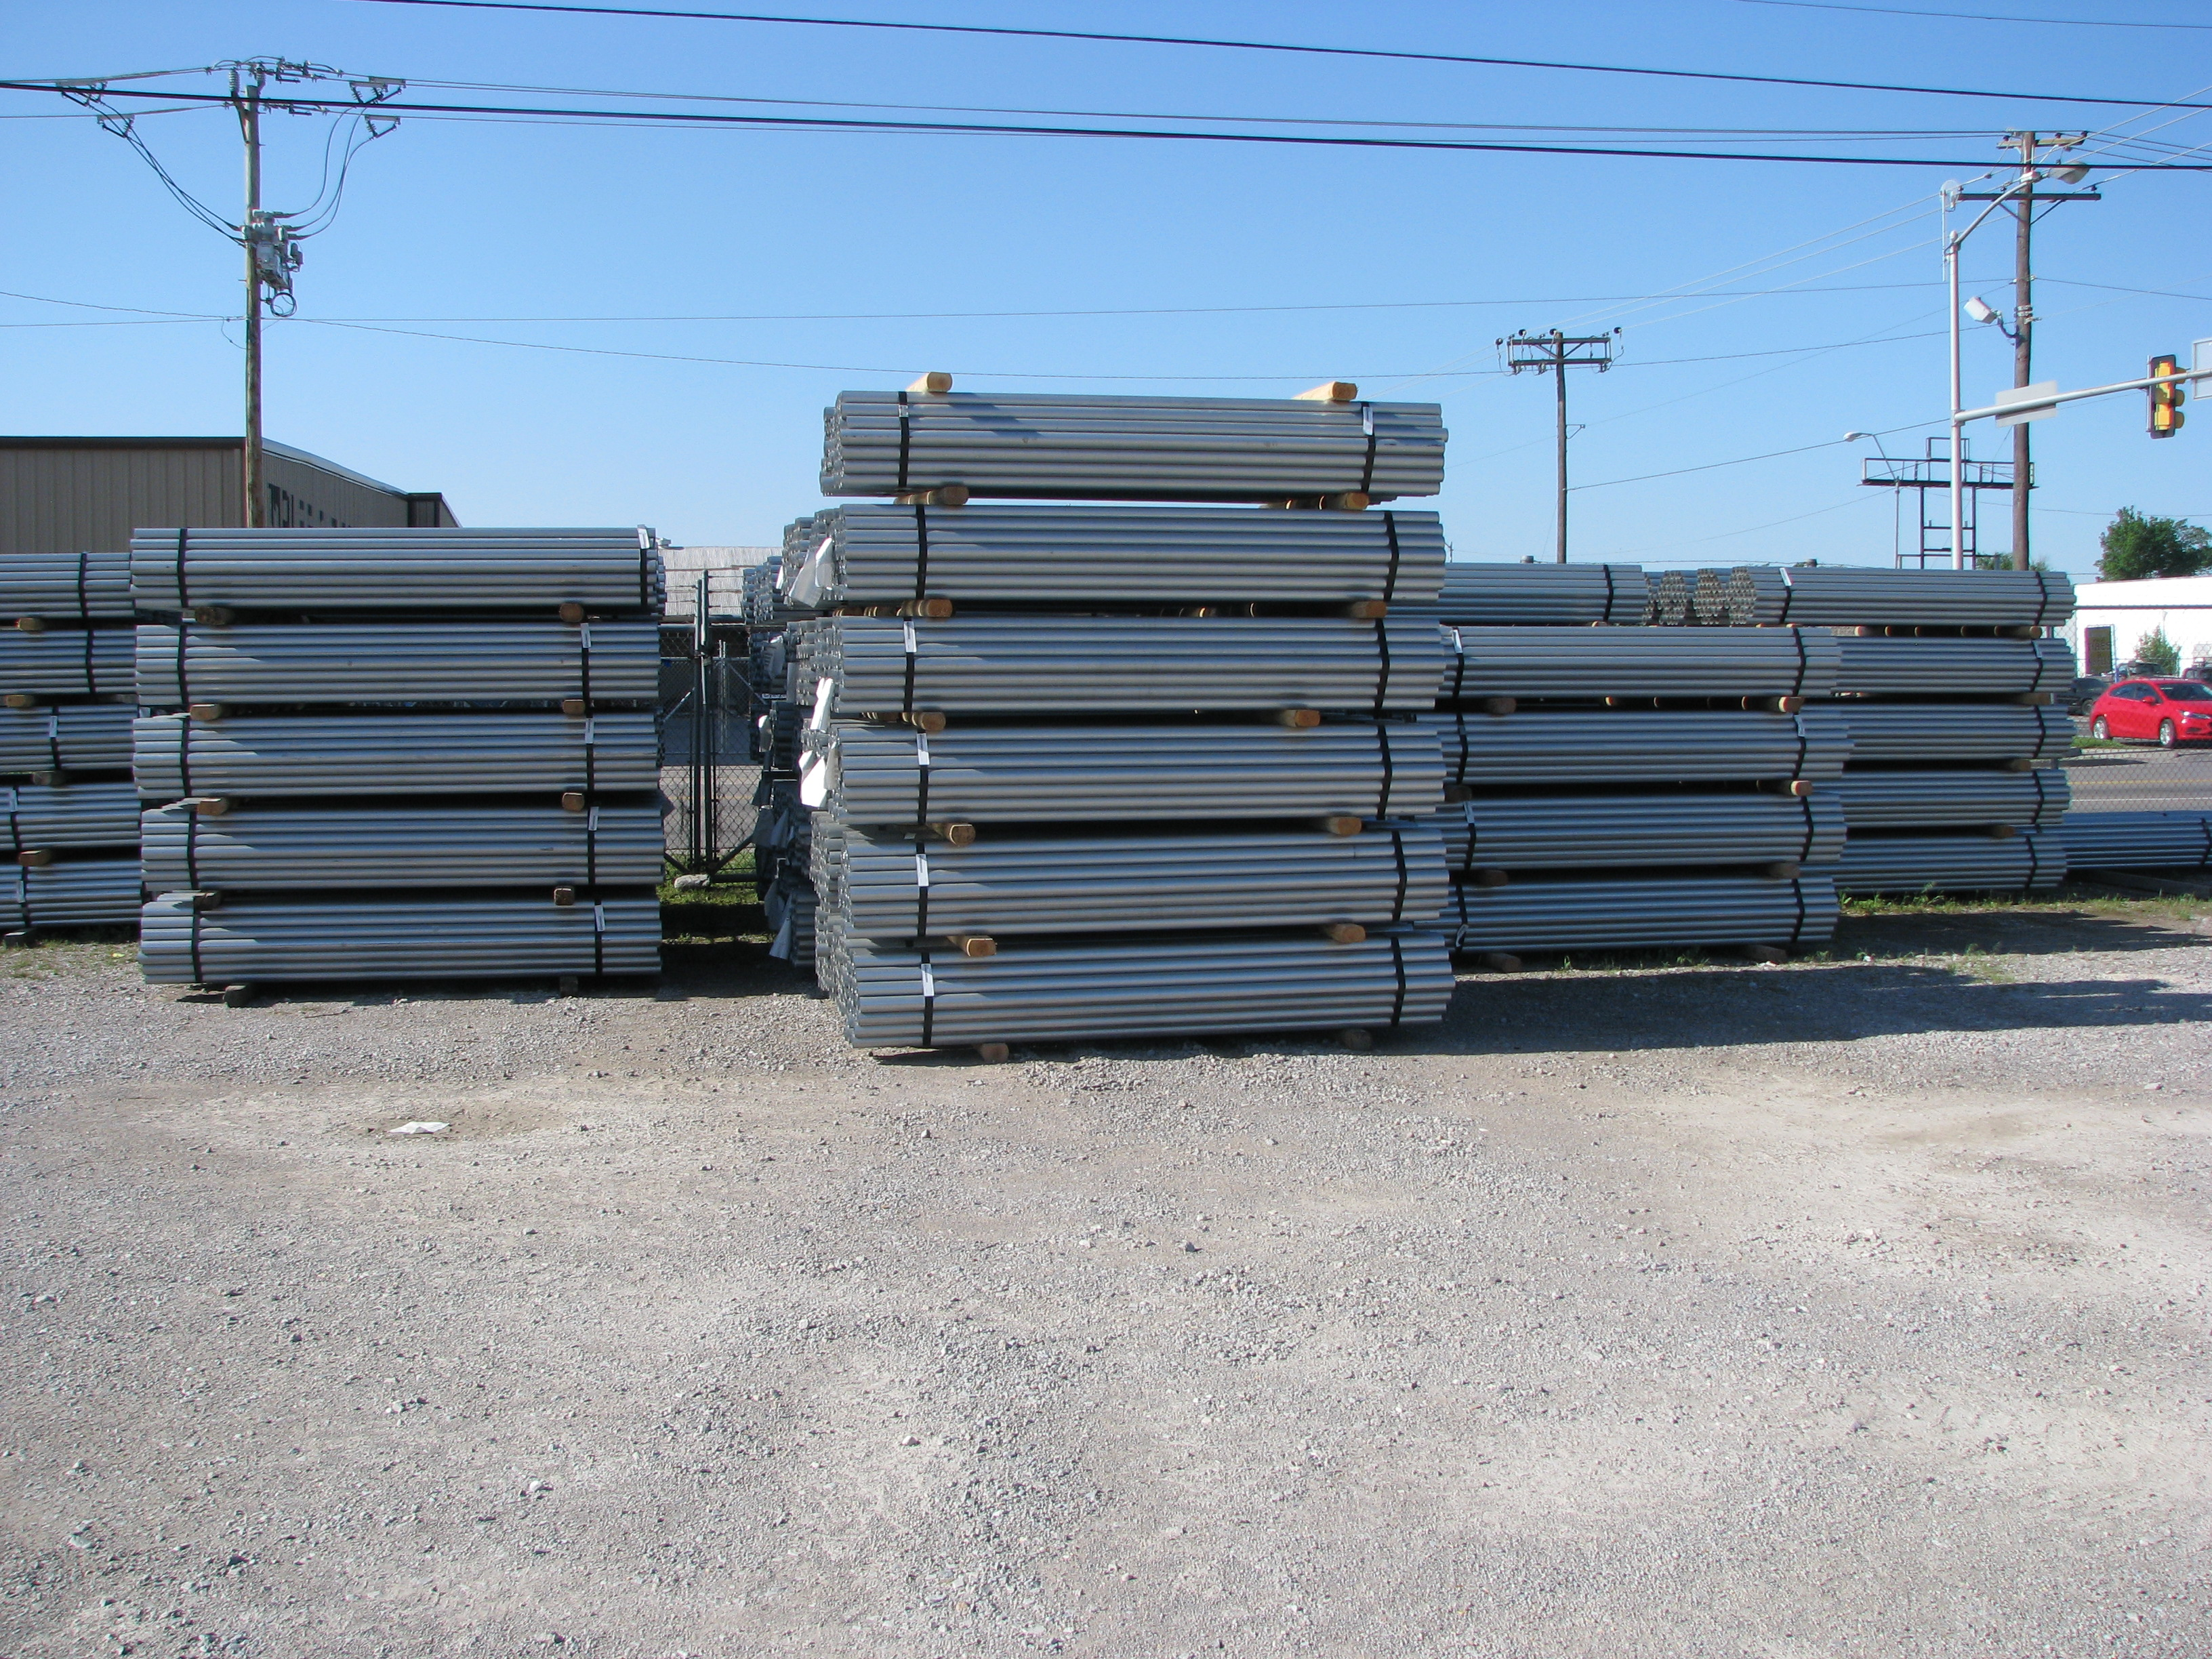 Fence Supplier Acme Fence In OKC Has Fence Posts.